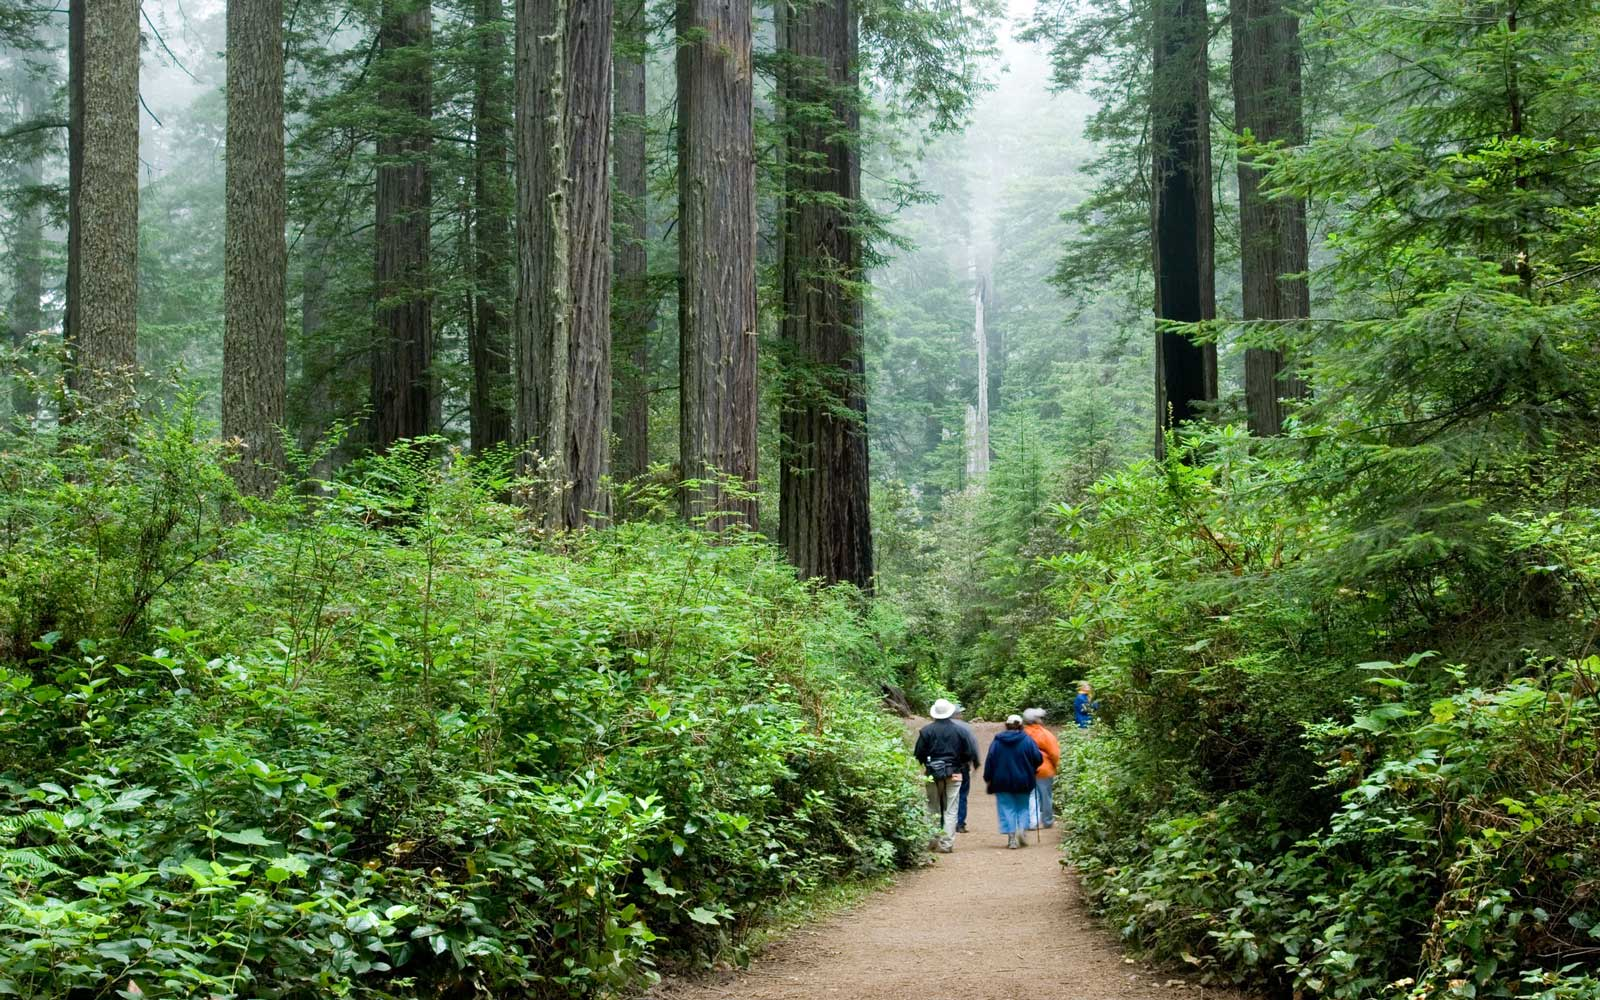 Seniors Can Get Lifetime Access to National Parks for $10